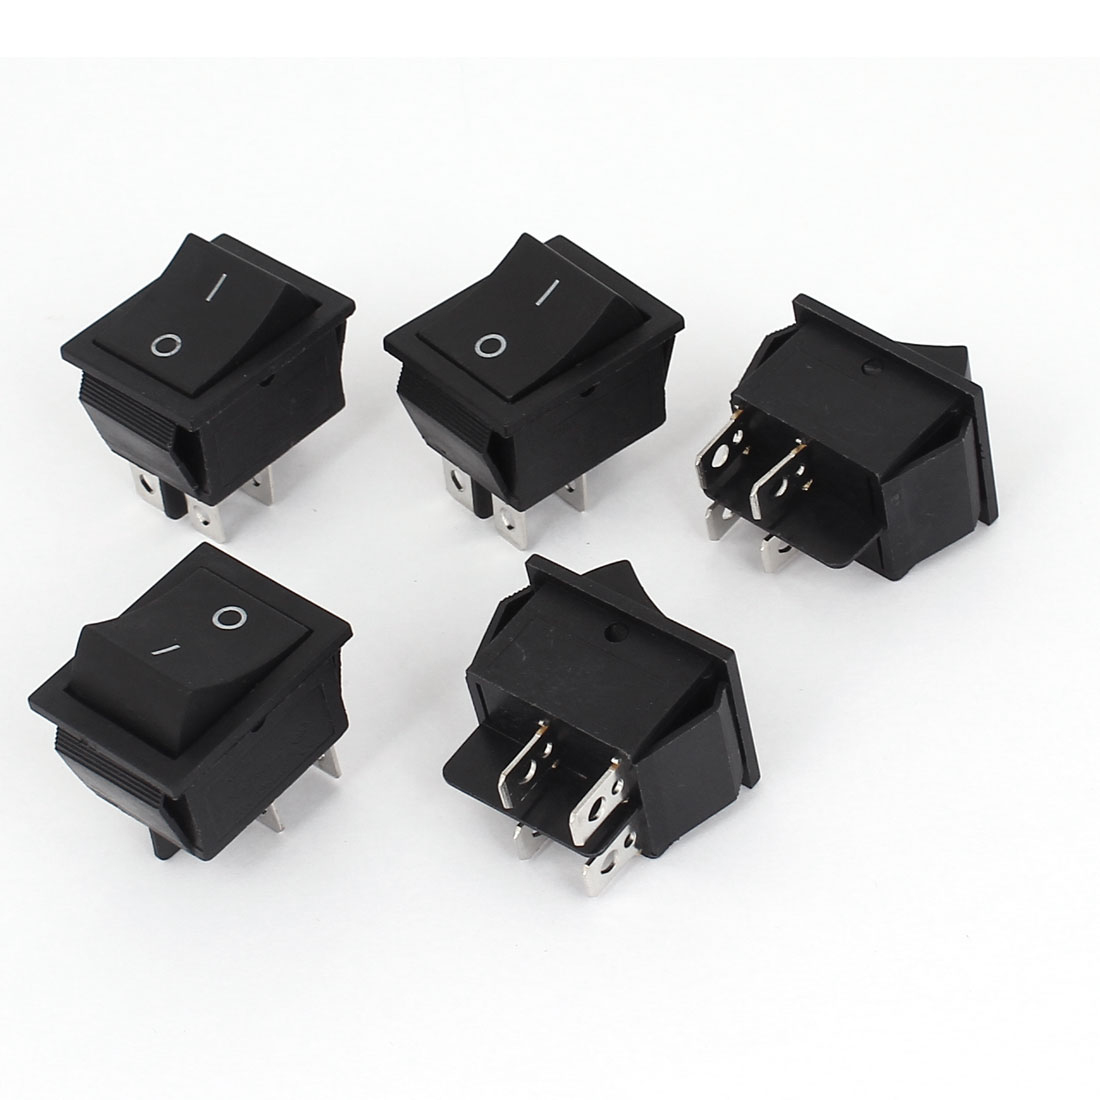 AC 250V/125V 16A/20A 4 Pins ON/OFF KCD4 Snap in Button Boat Rocker Switch 5Pcs